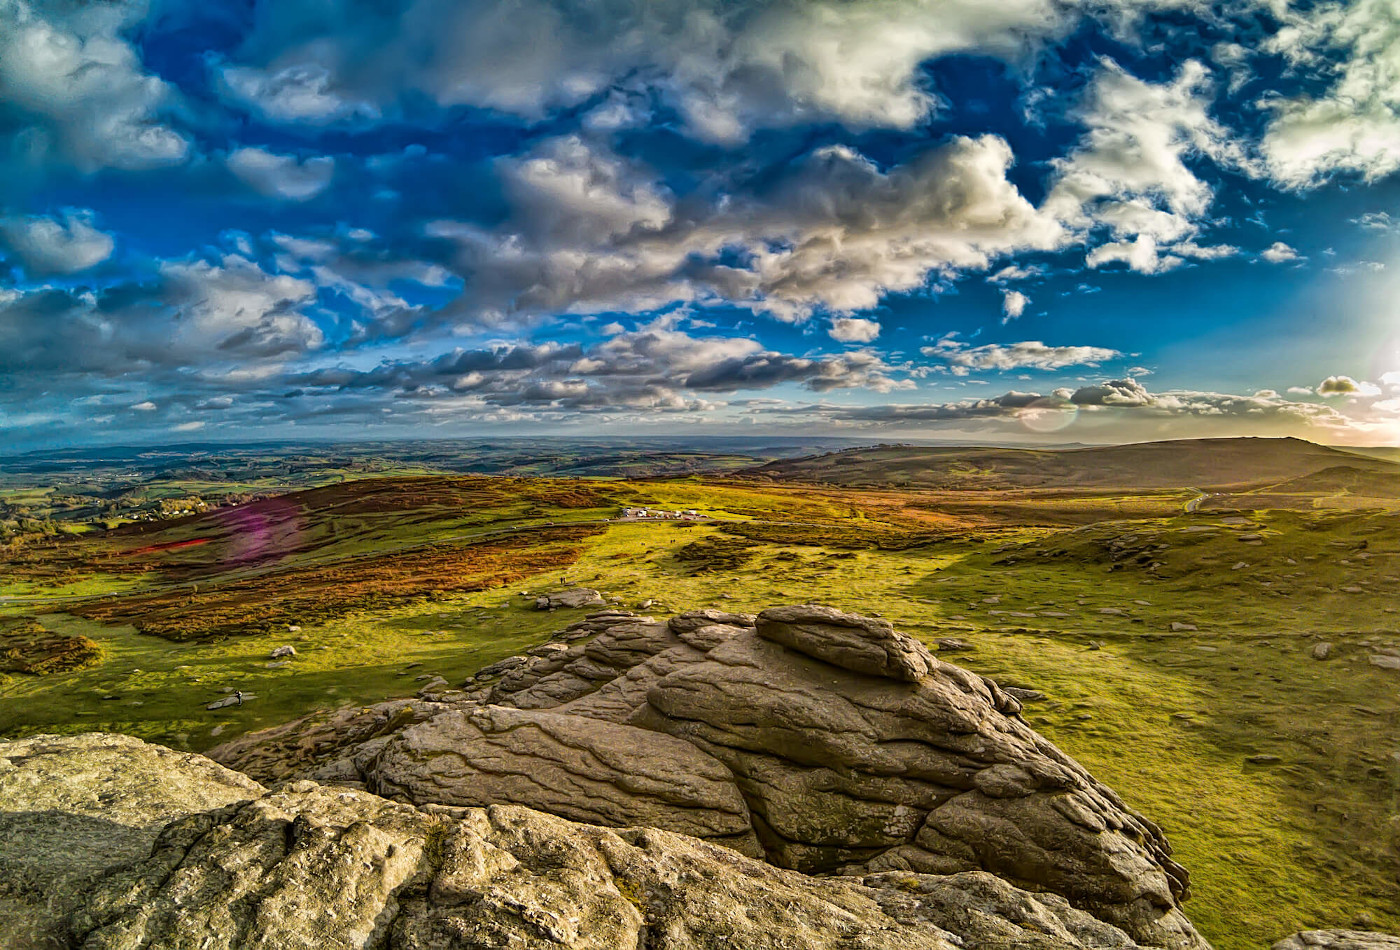 View of Dartmoor National Park